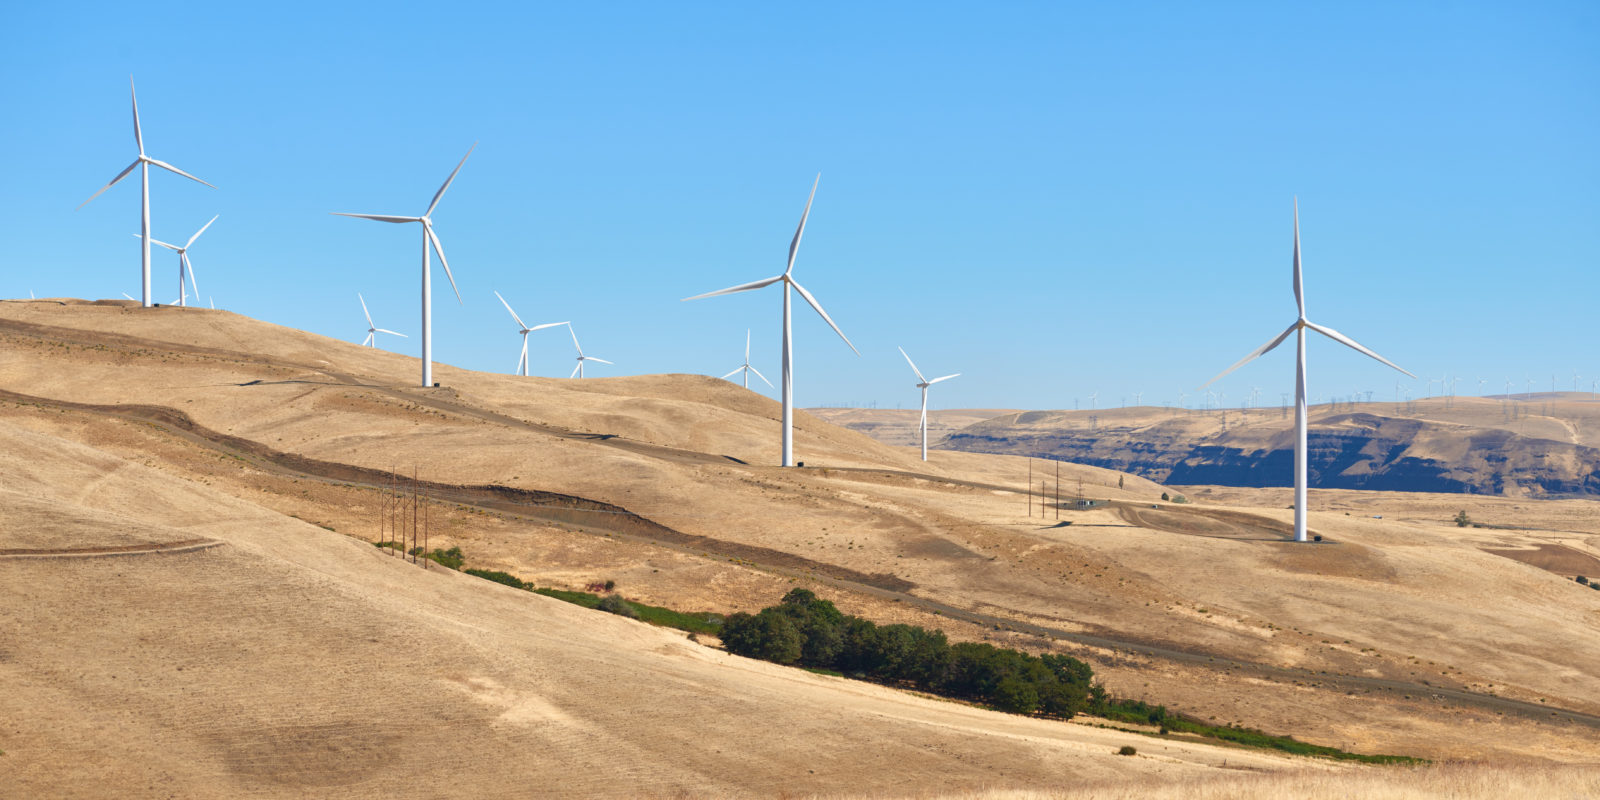 Wind power farm in Columbia River Gorge on the Oregon and Washington border.